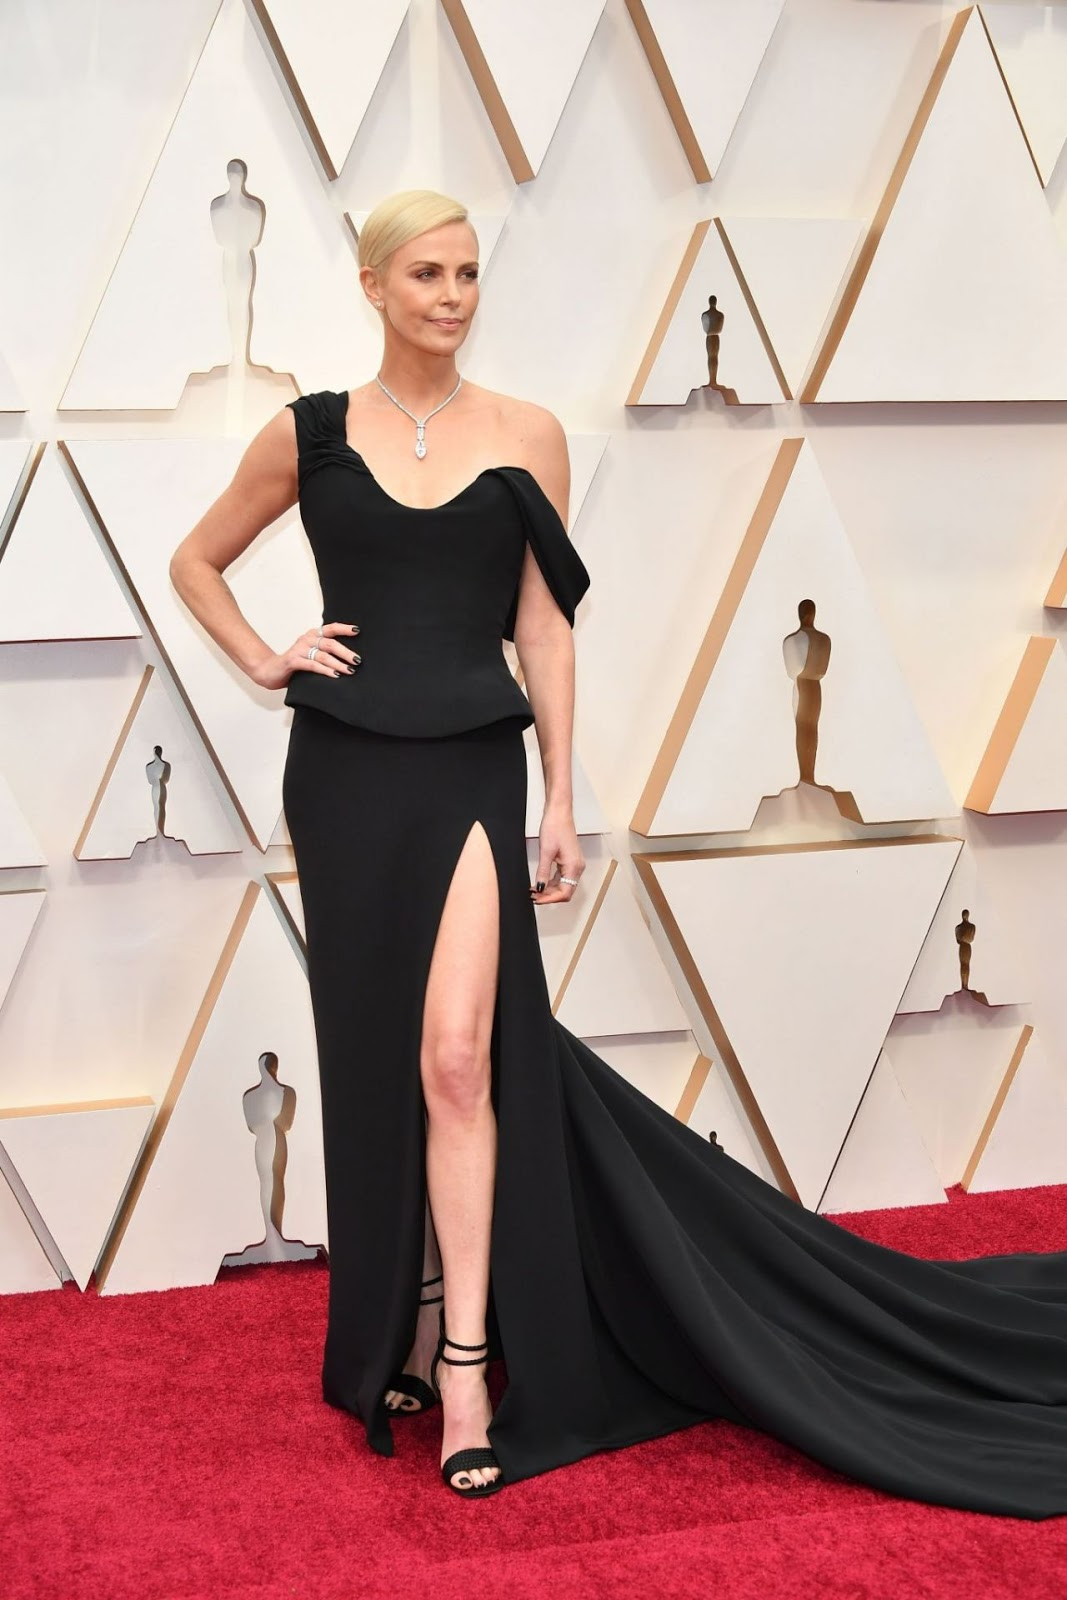 Charlize Theron - Oscars 2020 Red Carpet - 92nd Annual Academy Awards in Los Angeles